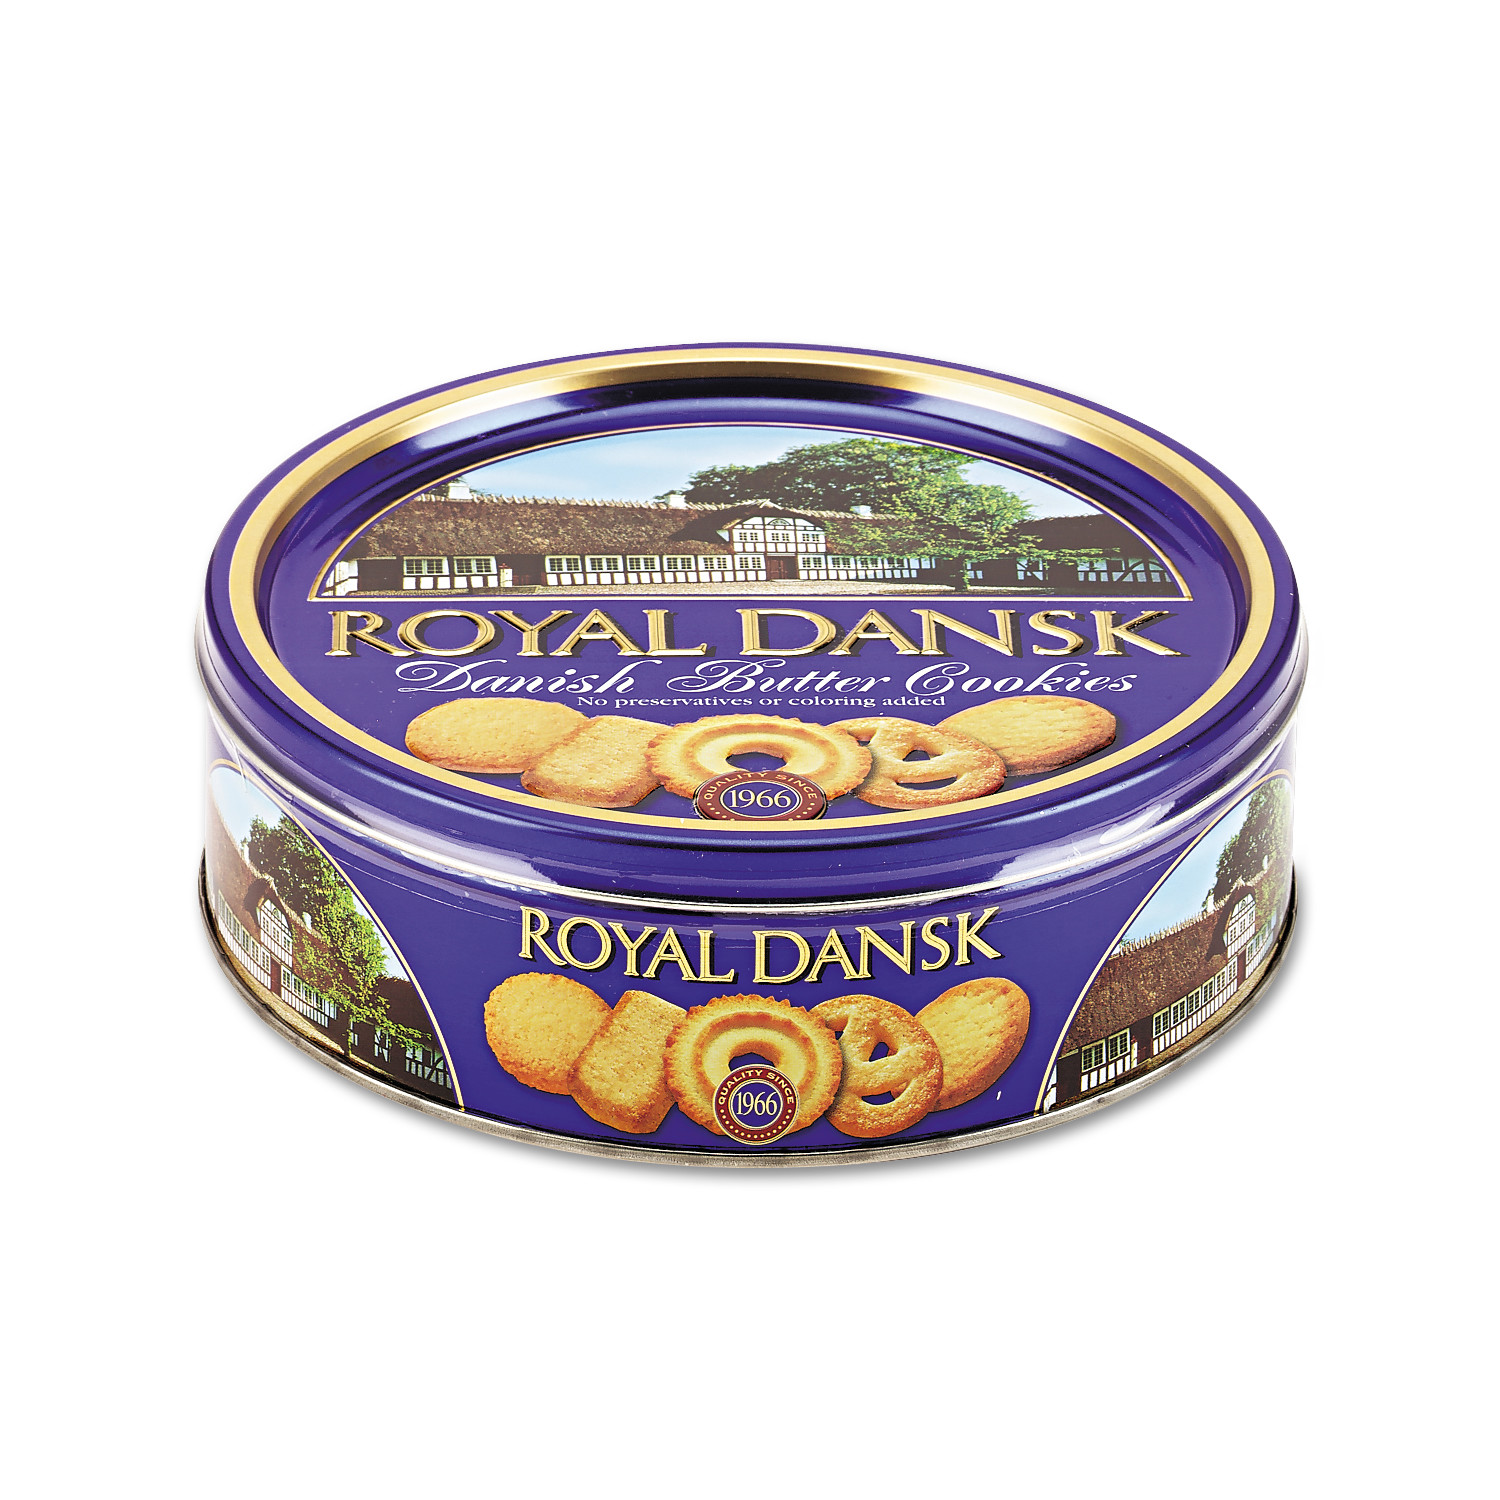 Royal Dansk Cookies, Danish Butter, 12oz Tin